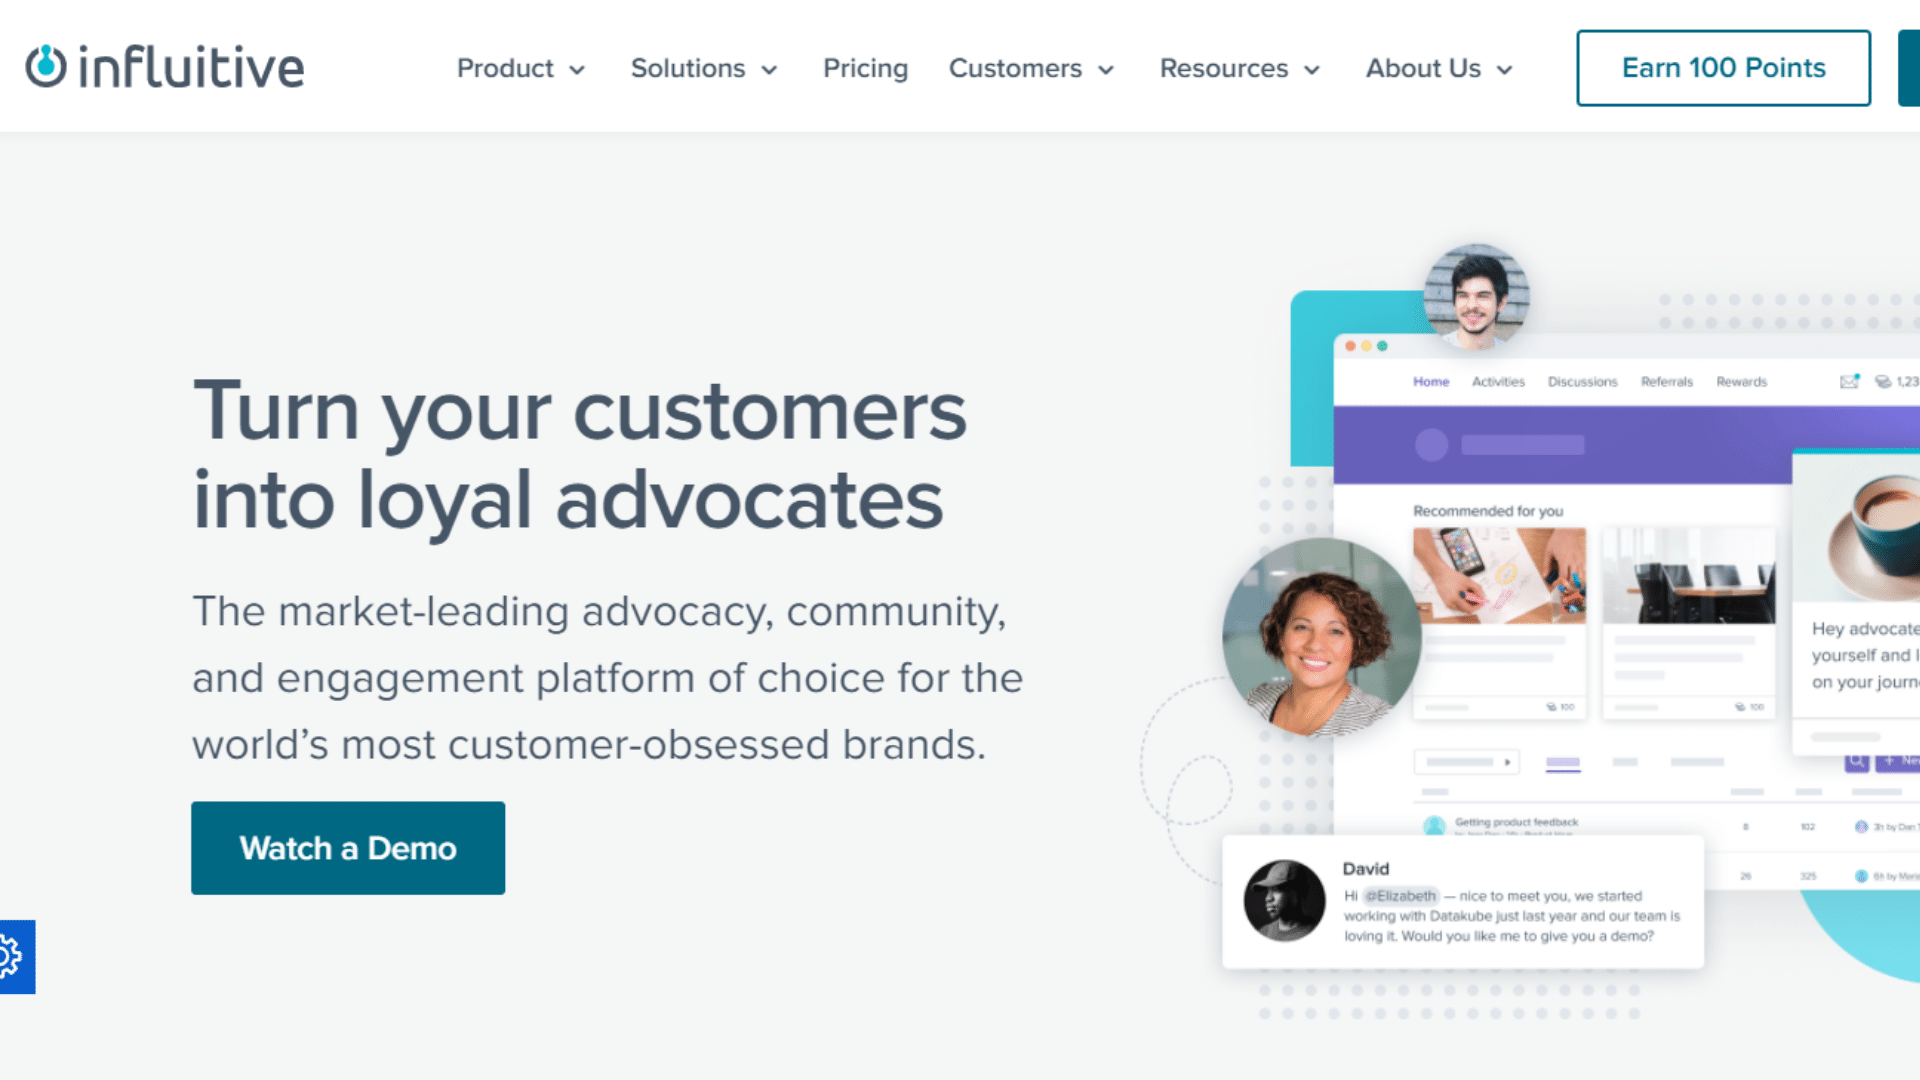 Influitive customer advocacy software